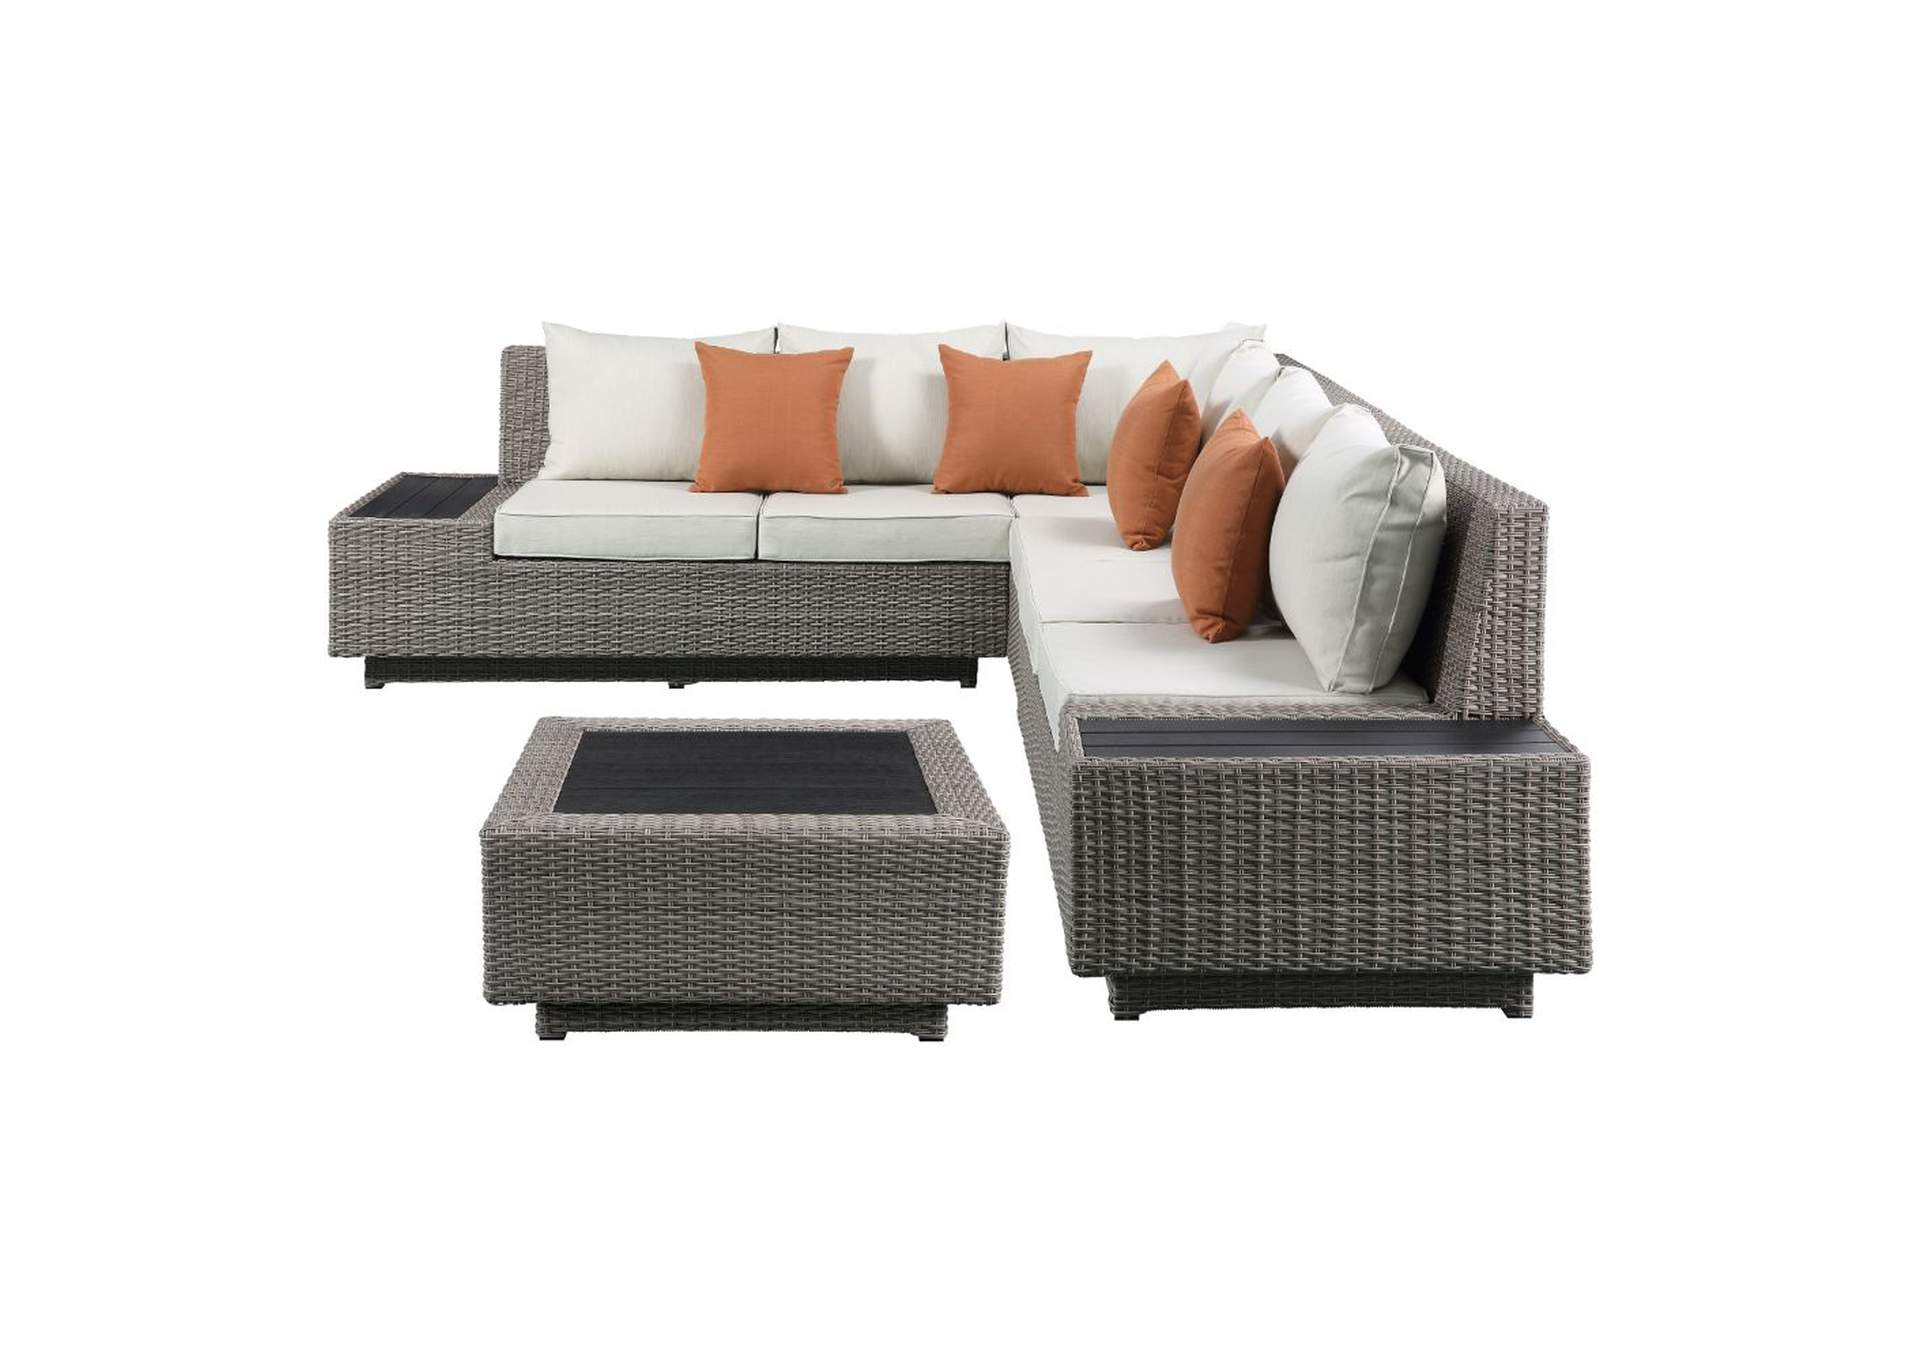 Salena Beige Sectional Sofa w/Cocktail Table,Acme